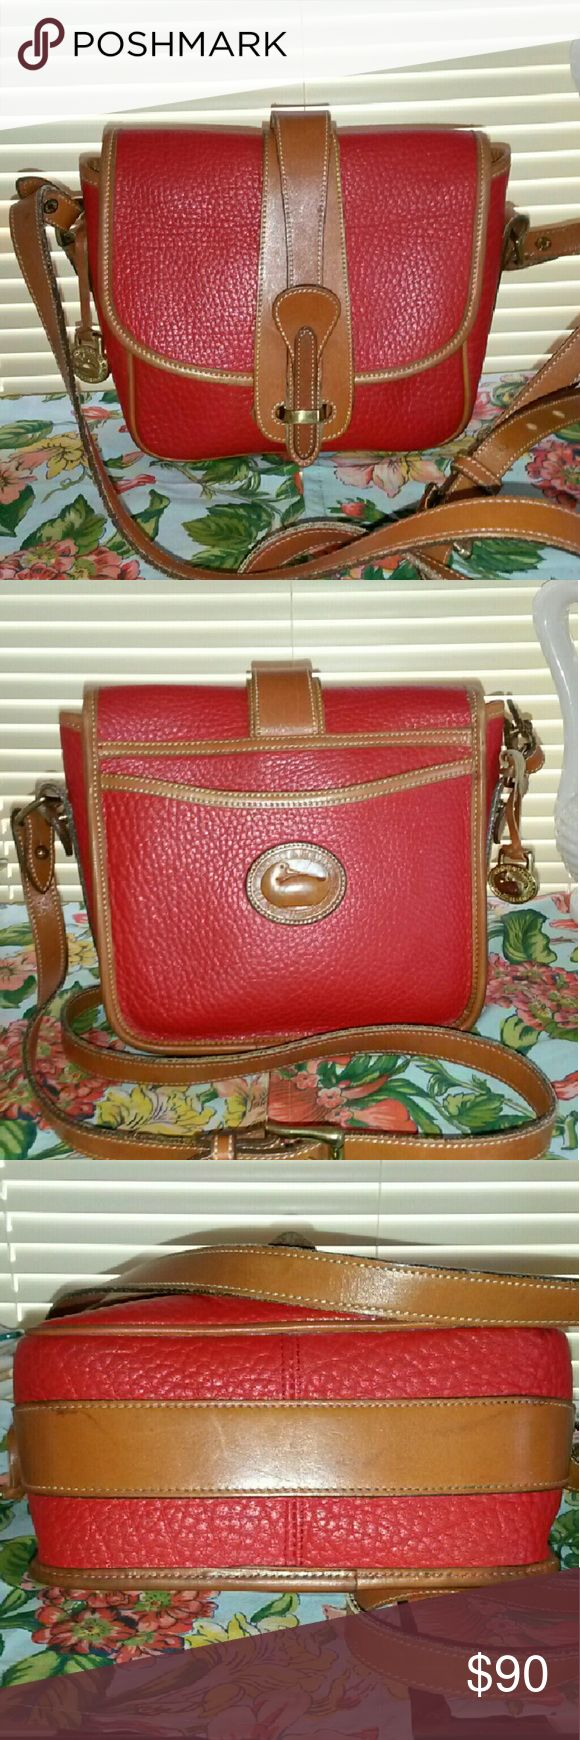 DOONEY BOURKE VINTAGE BINOCULAR BAG Gorgeous Red and British tan Vintage binocular bag. She shows no signs of piping damage, scuffs, marks or stains on the outside. The inside has ink spot on bottom of inside bag. Overall a beautiful bag to show off!! Dooney & Bourke Bags Shoulder Bags